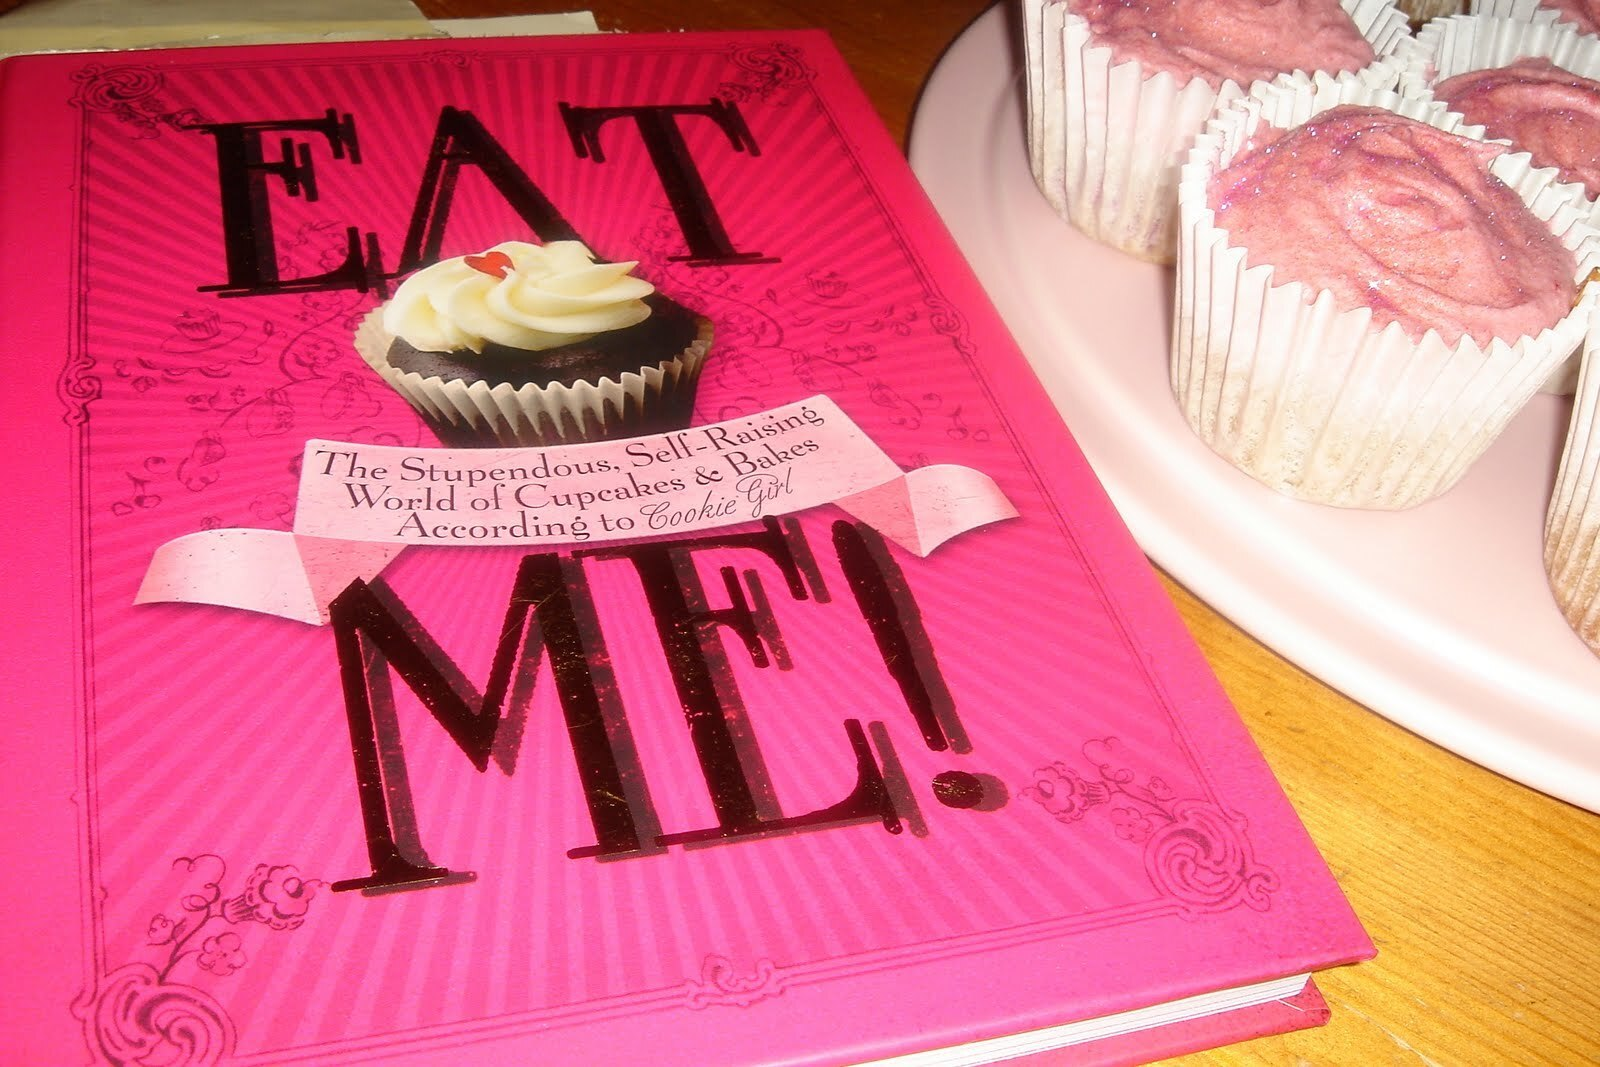 Eat Me Review and Cookbook Giveaway